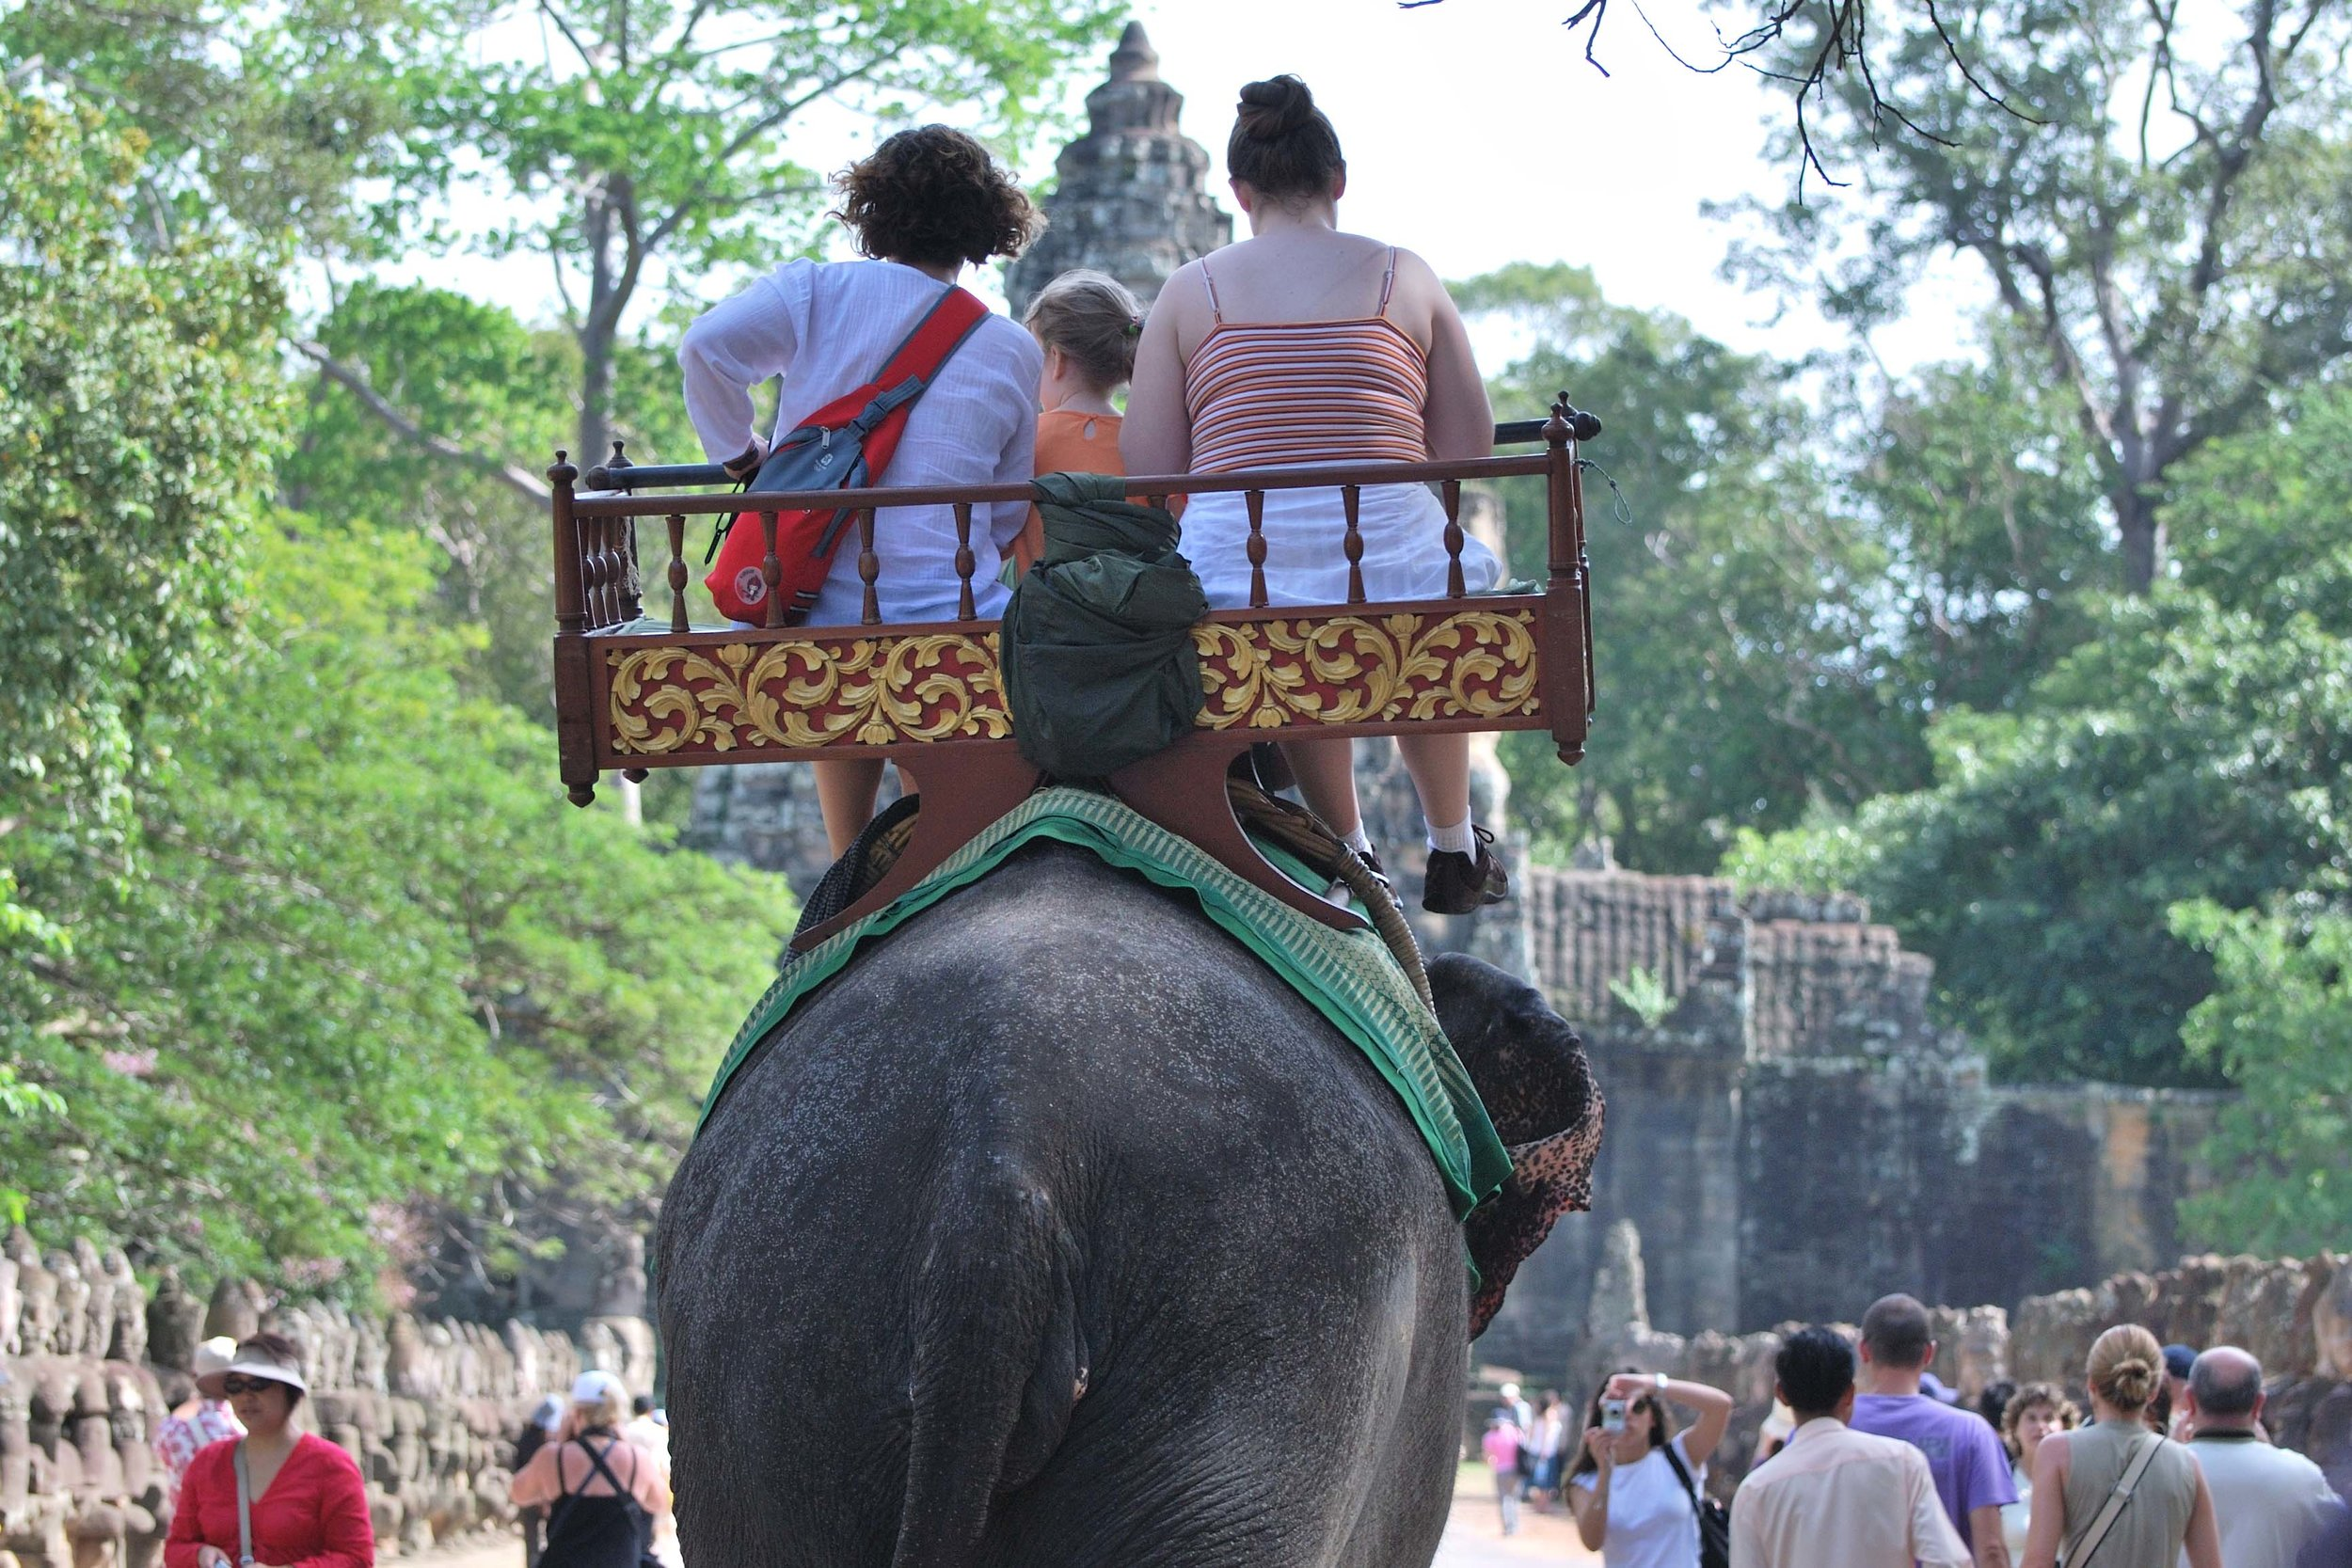 Elephants battle extreme heat to ferry tourists around the ruins of Angkor Wat in Cambodia, where a working elephant dropped dead from exhaustion in April 2016. Image by Osrin / flickr